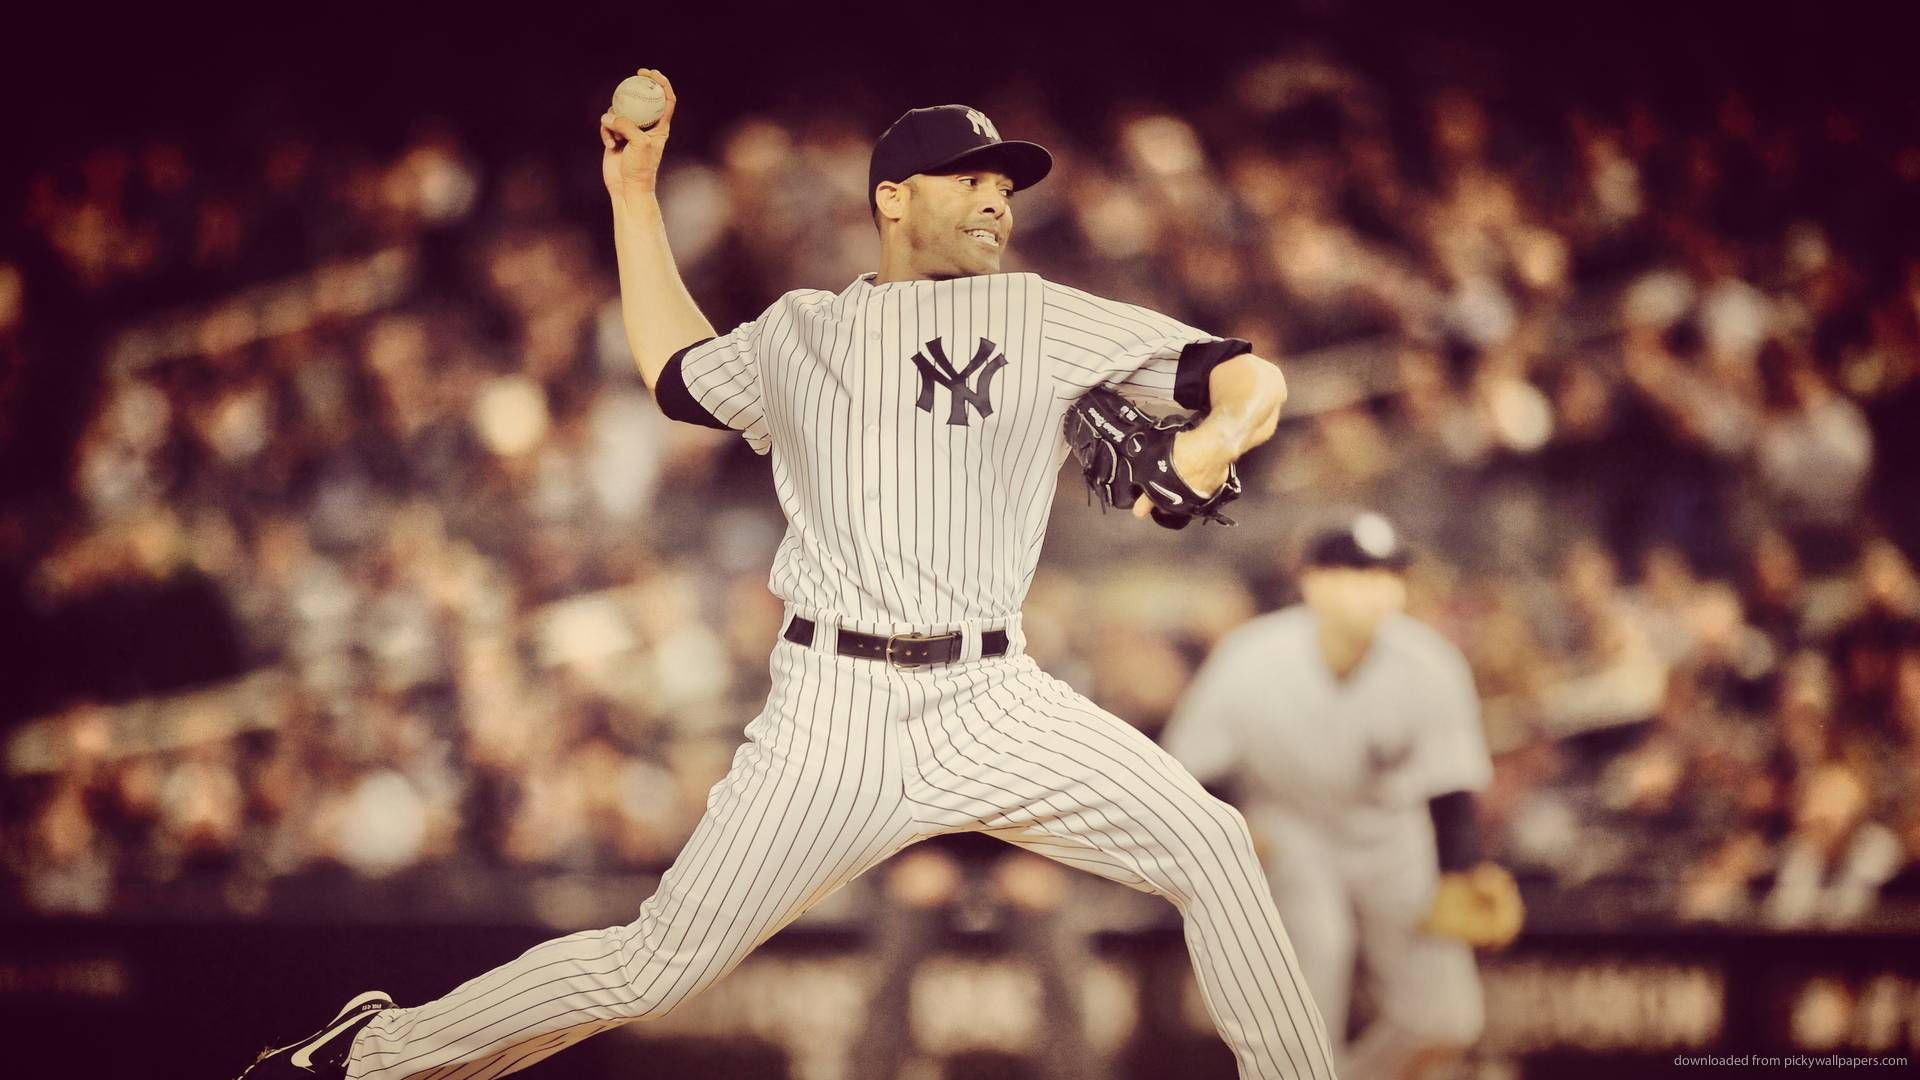 mariano rivera hd wallpapers 8 mariano rivera hd wallpapers